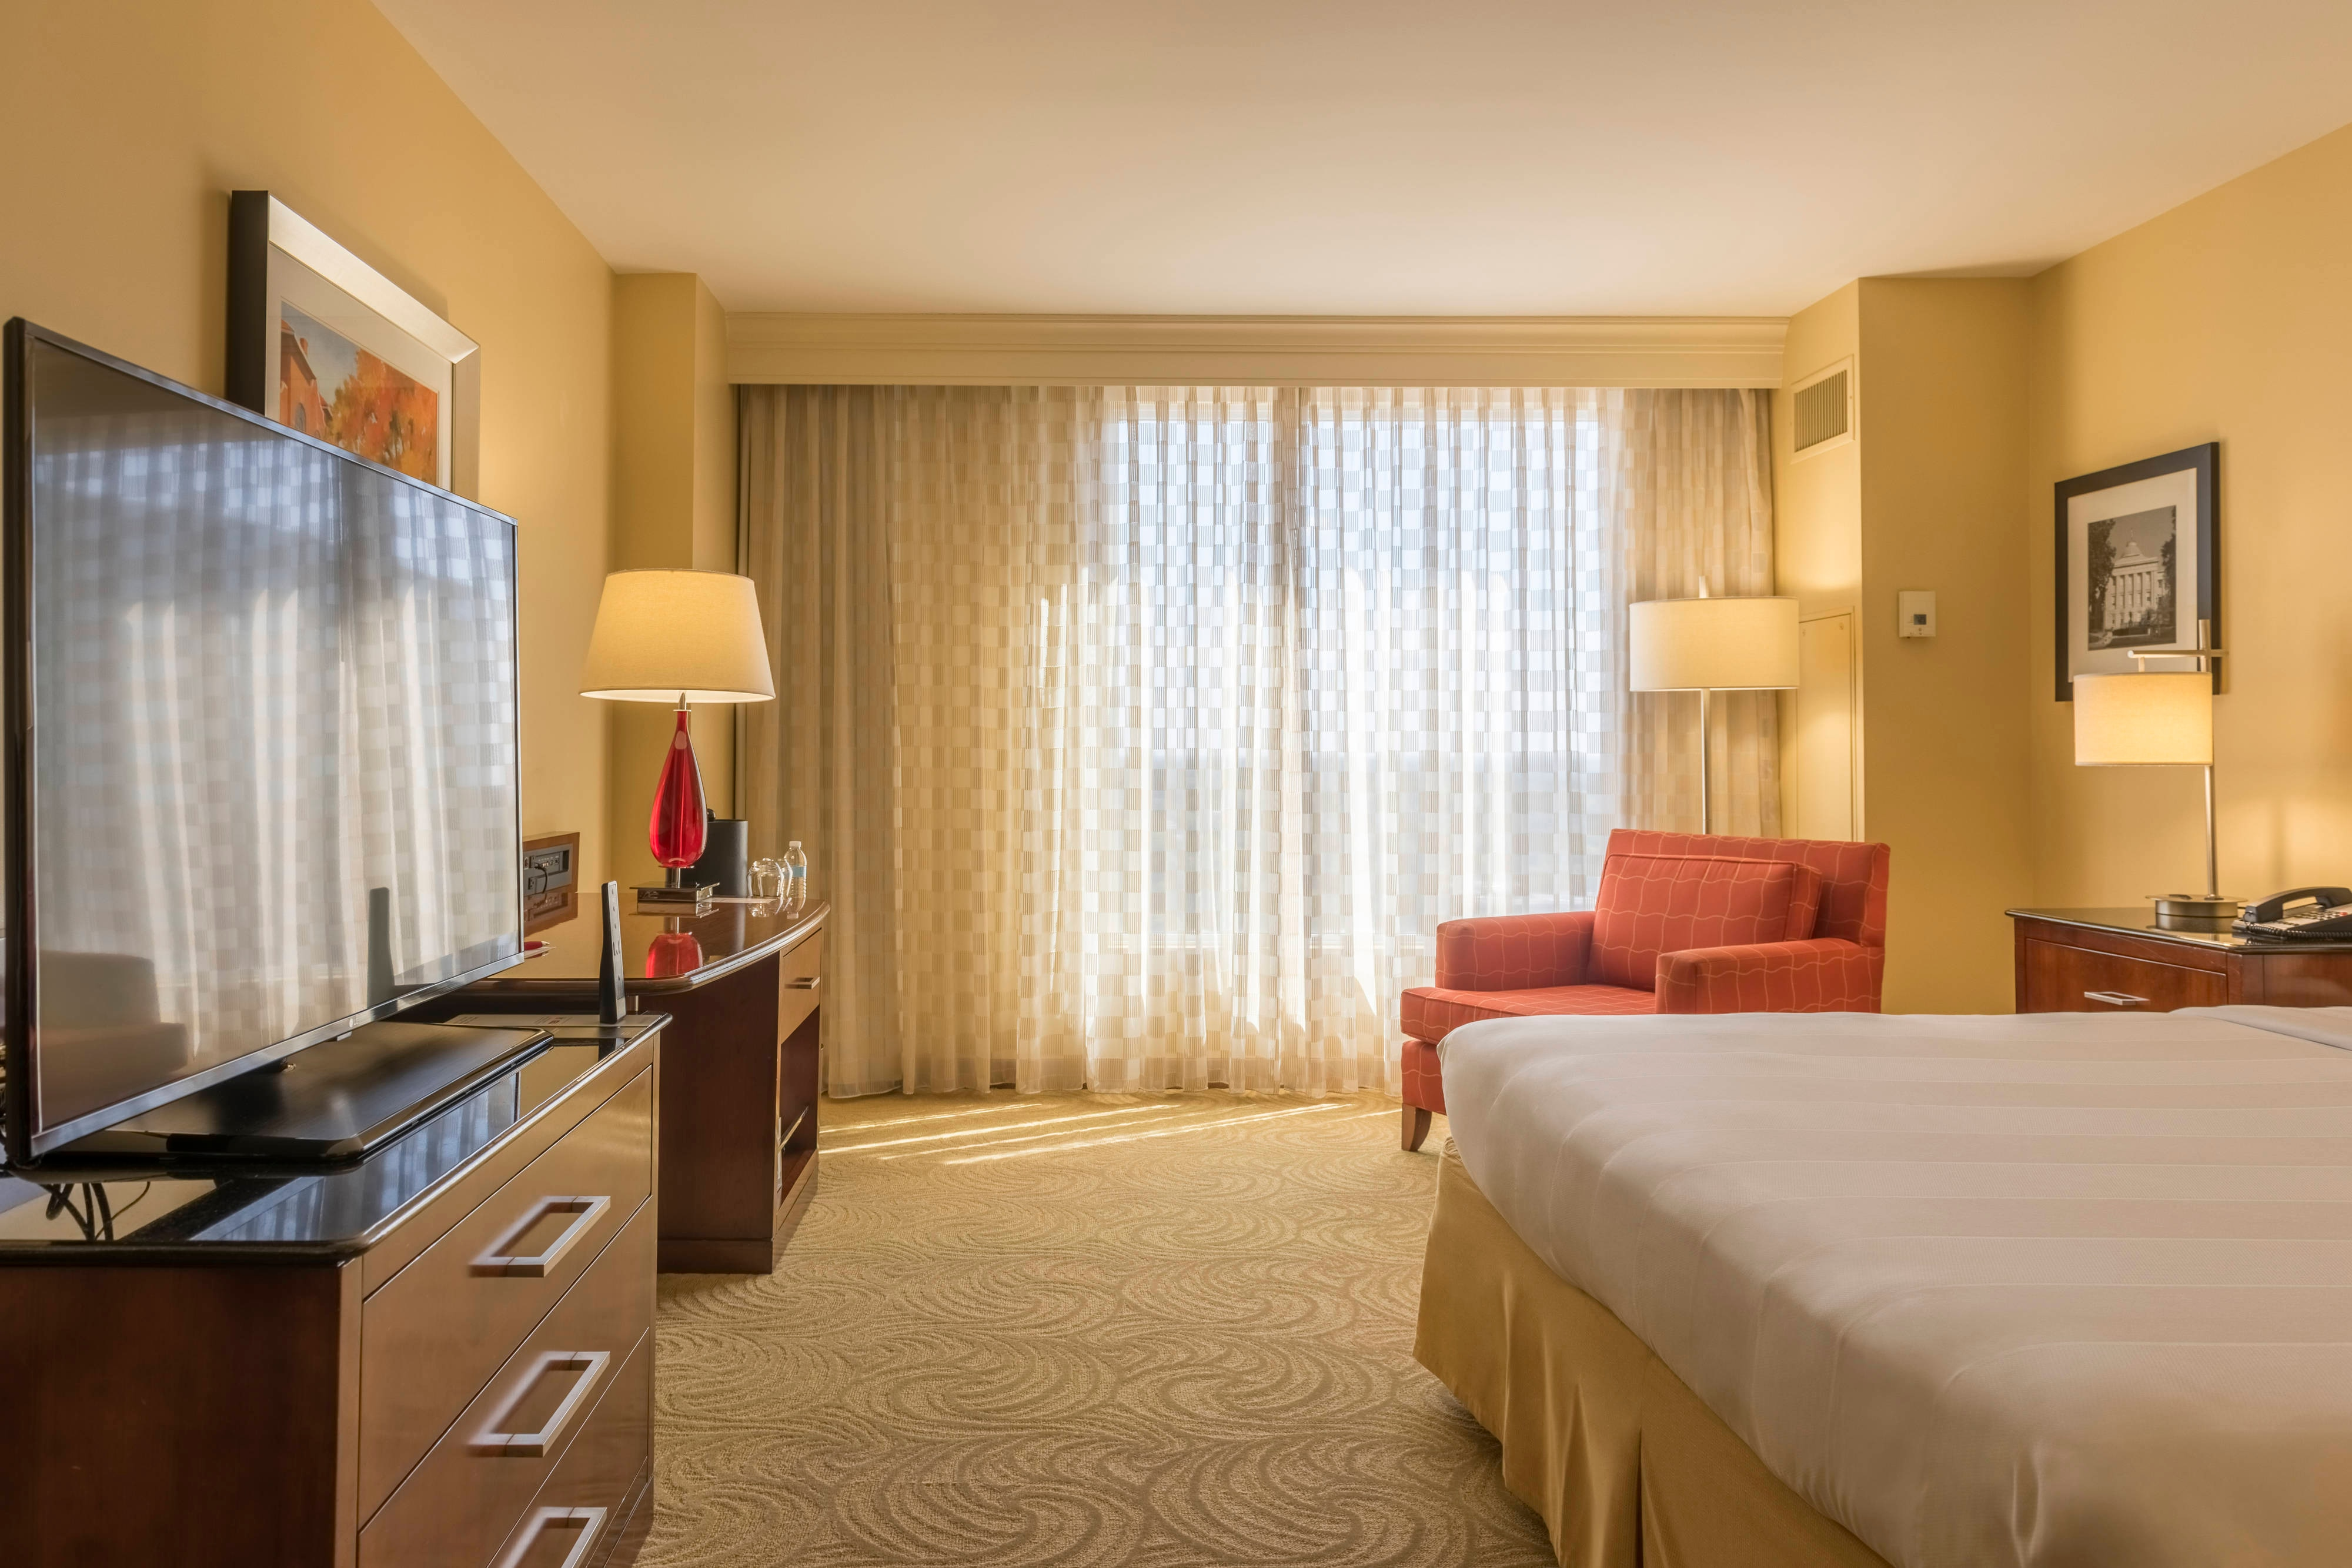 Rooms and Hotel Suites in Raleigh, NC | Raleigh Marriott City Center